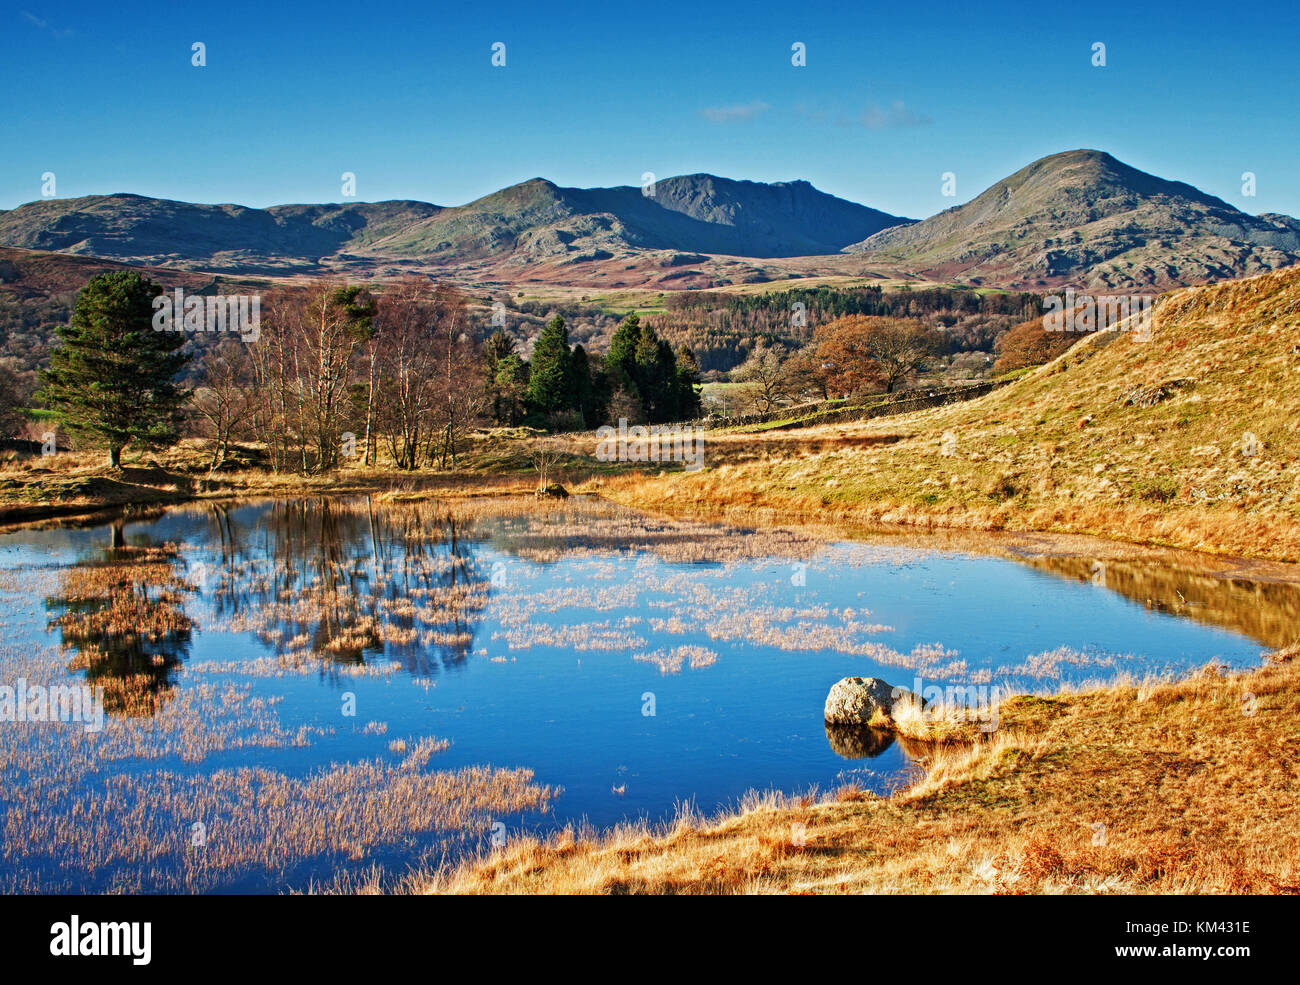 The tranquillity of Kelly Hall Tarn - Stock Image